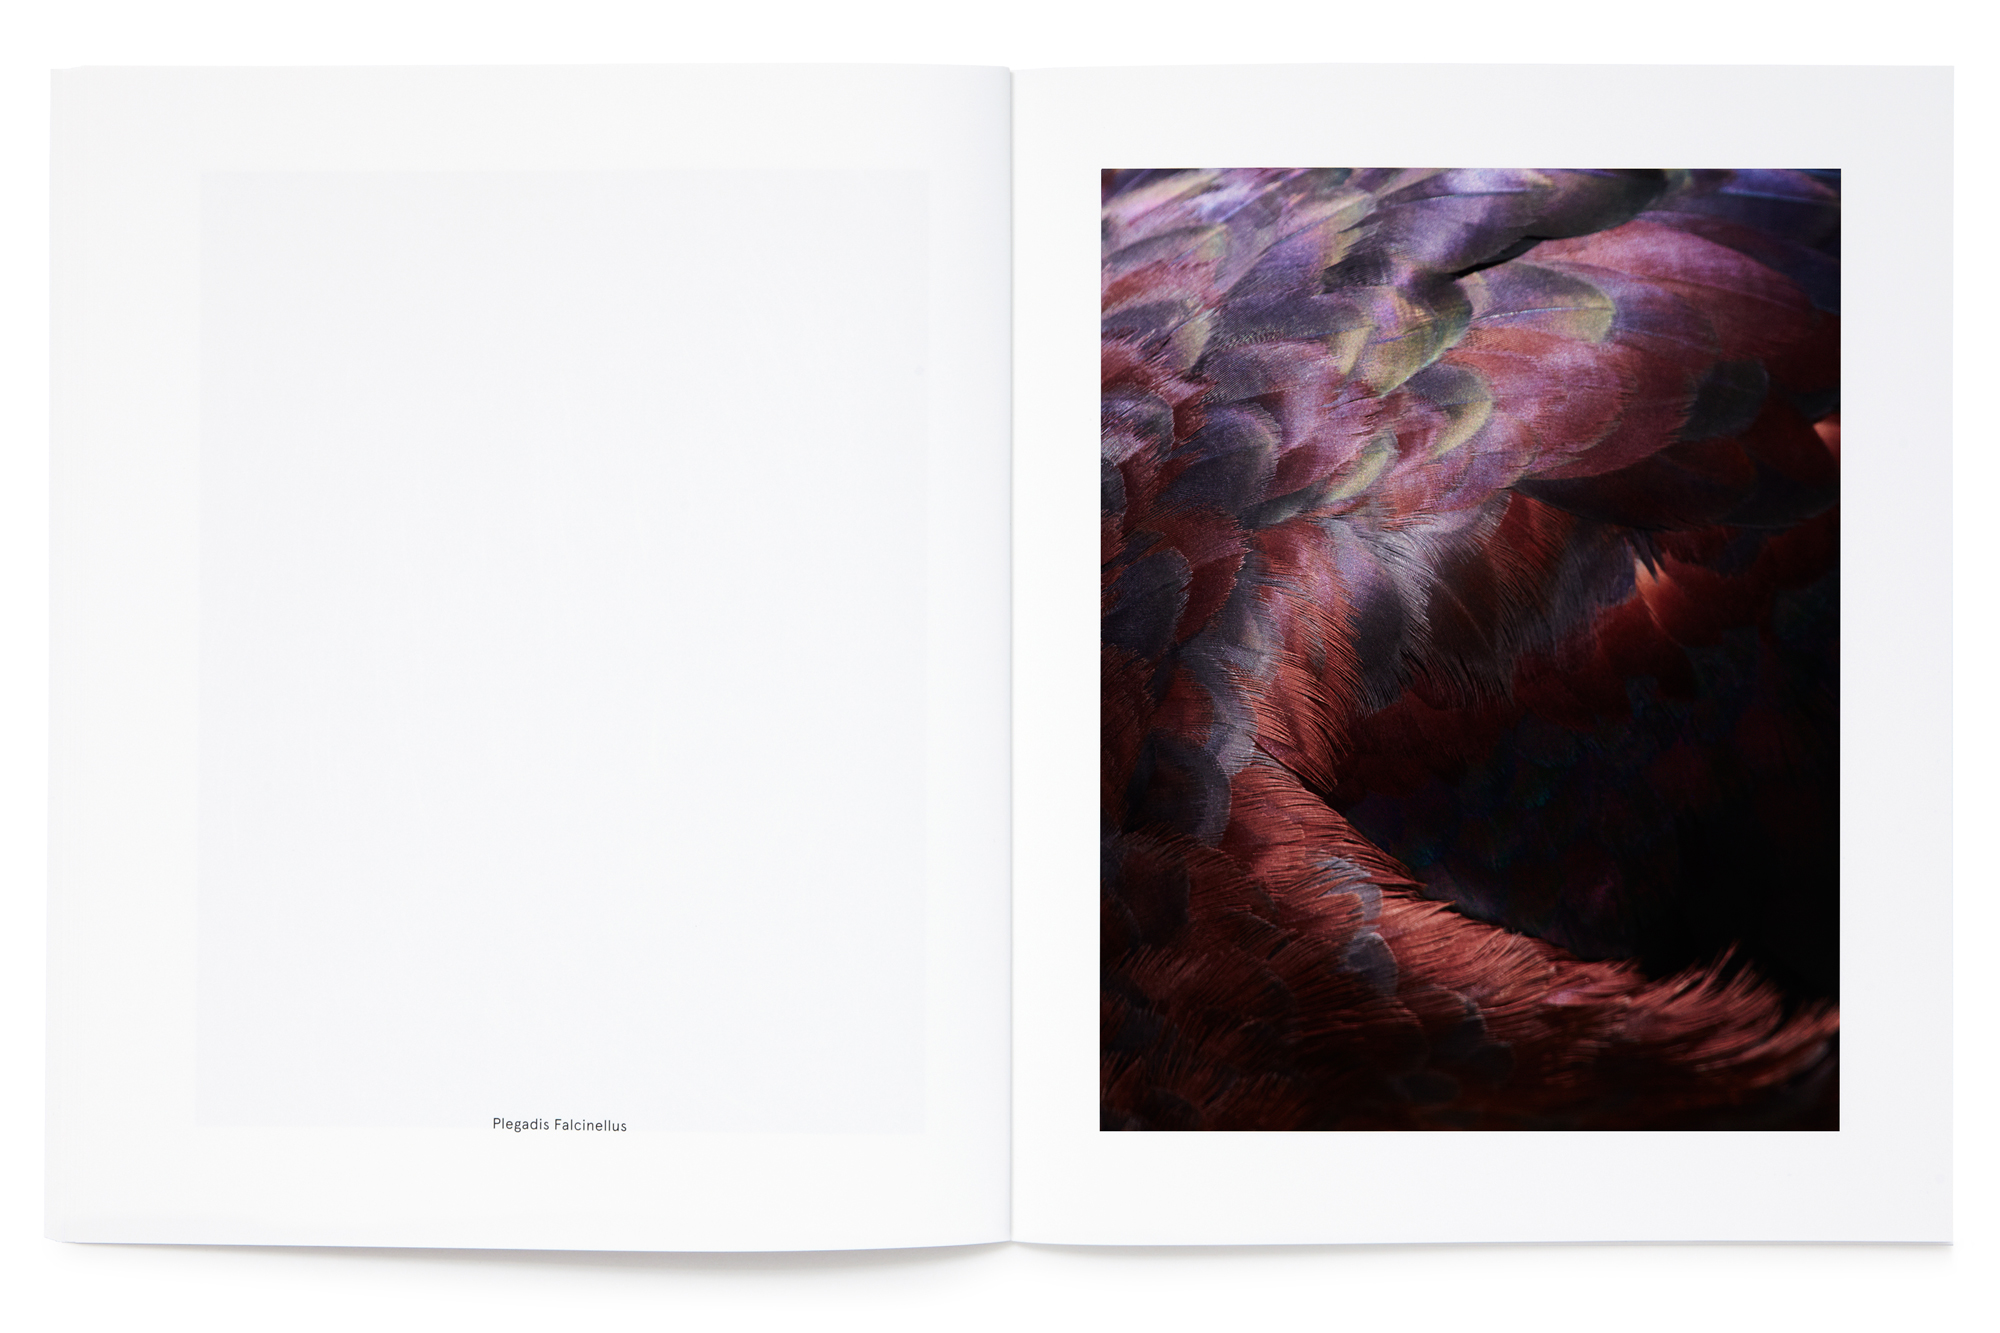 Daniel Baer – Birds&nbsp;&ndash; Publication. <i>Thomas&nbsp;Lohr</i>